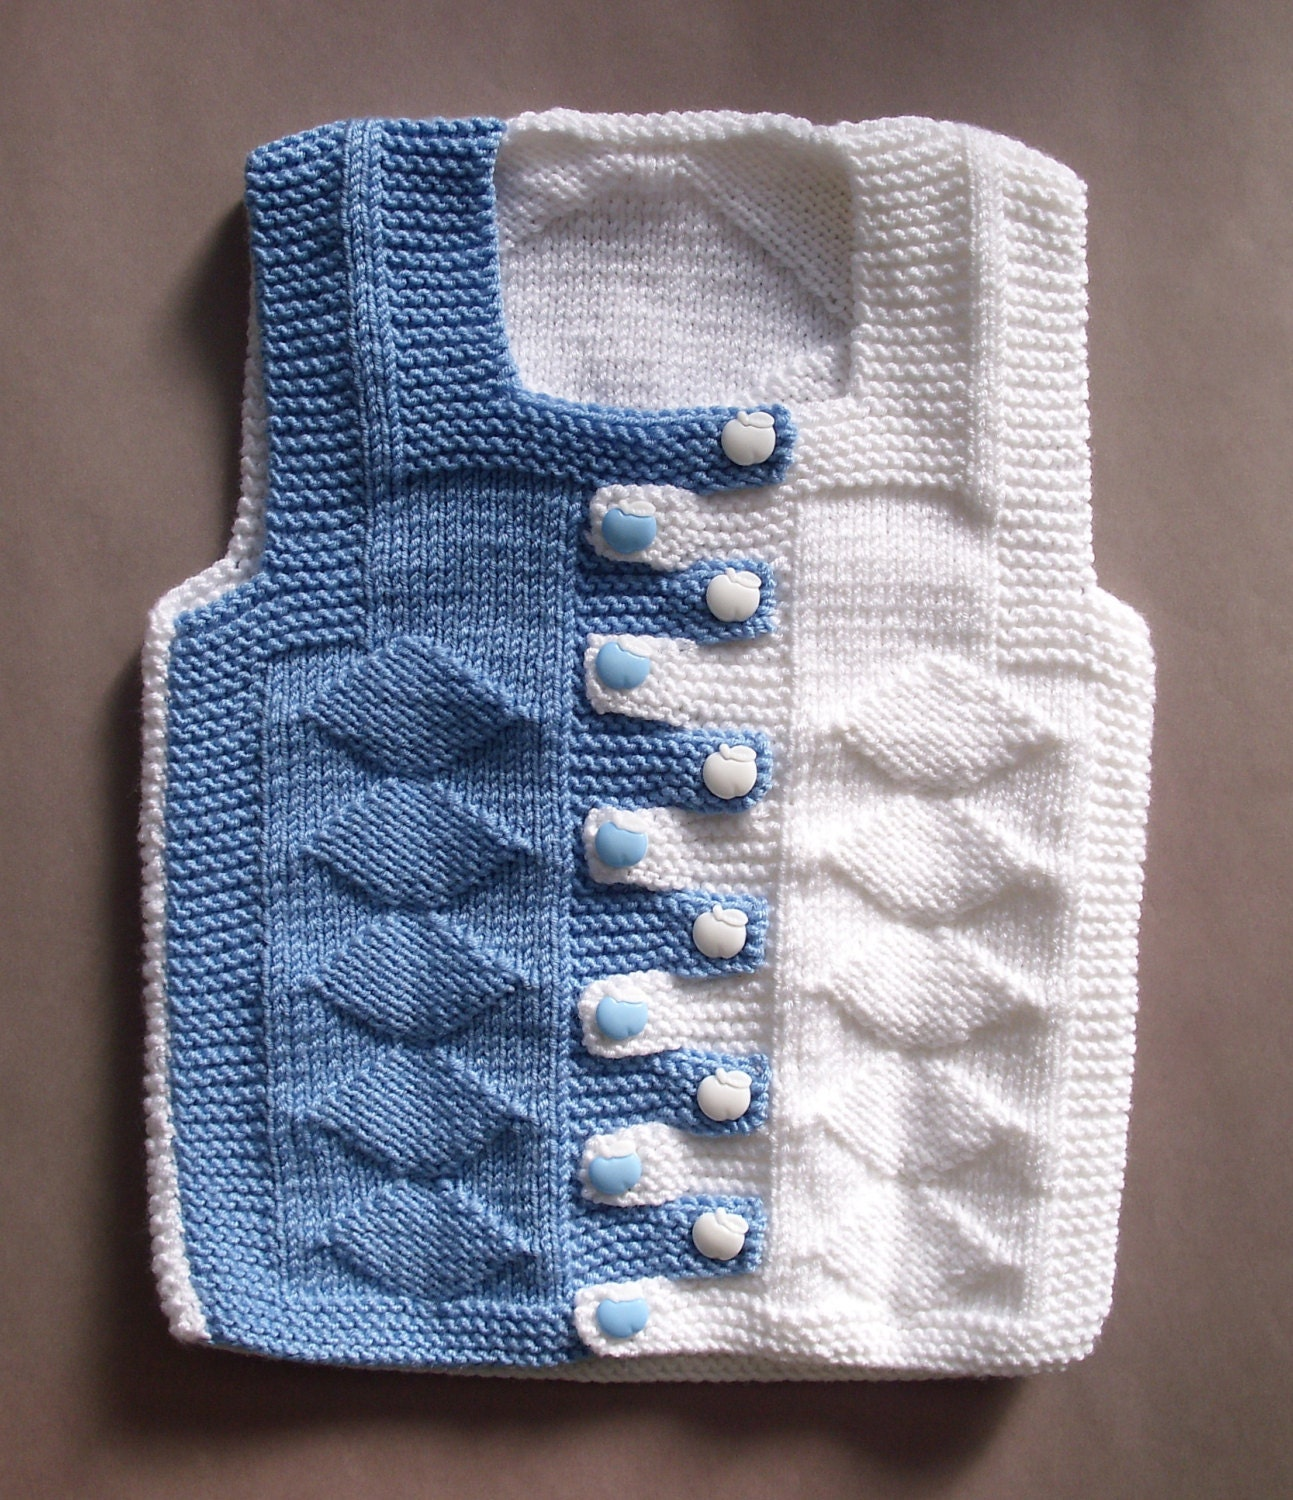 Knitting Patterns For Babies Waistcoats : Baby Hand Knit Waistcoat. Kids Sweaters. Kids Waistcoat and